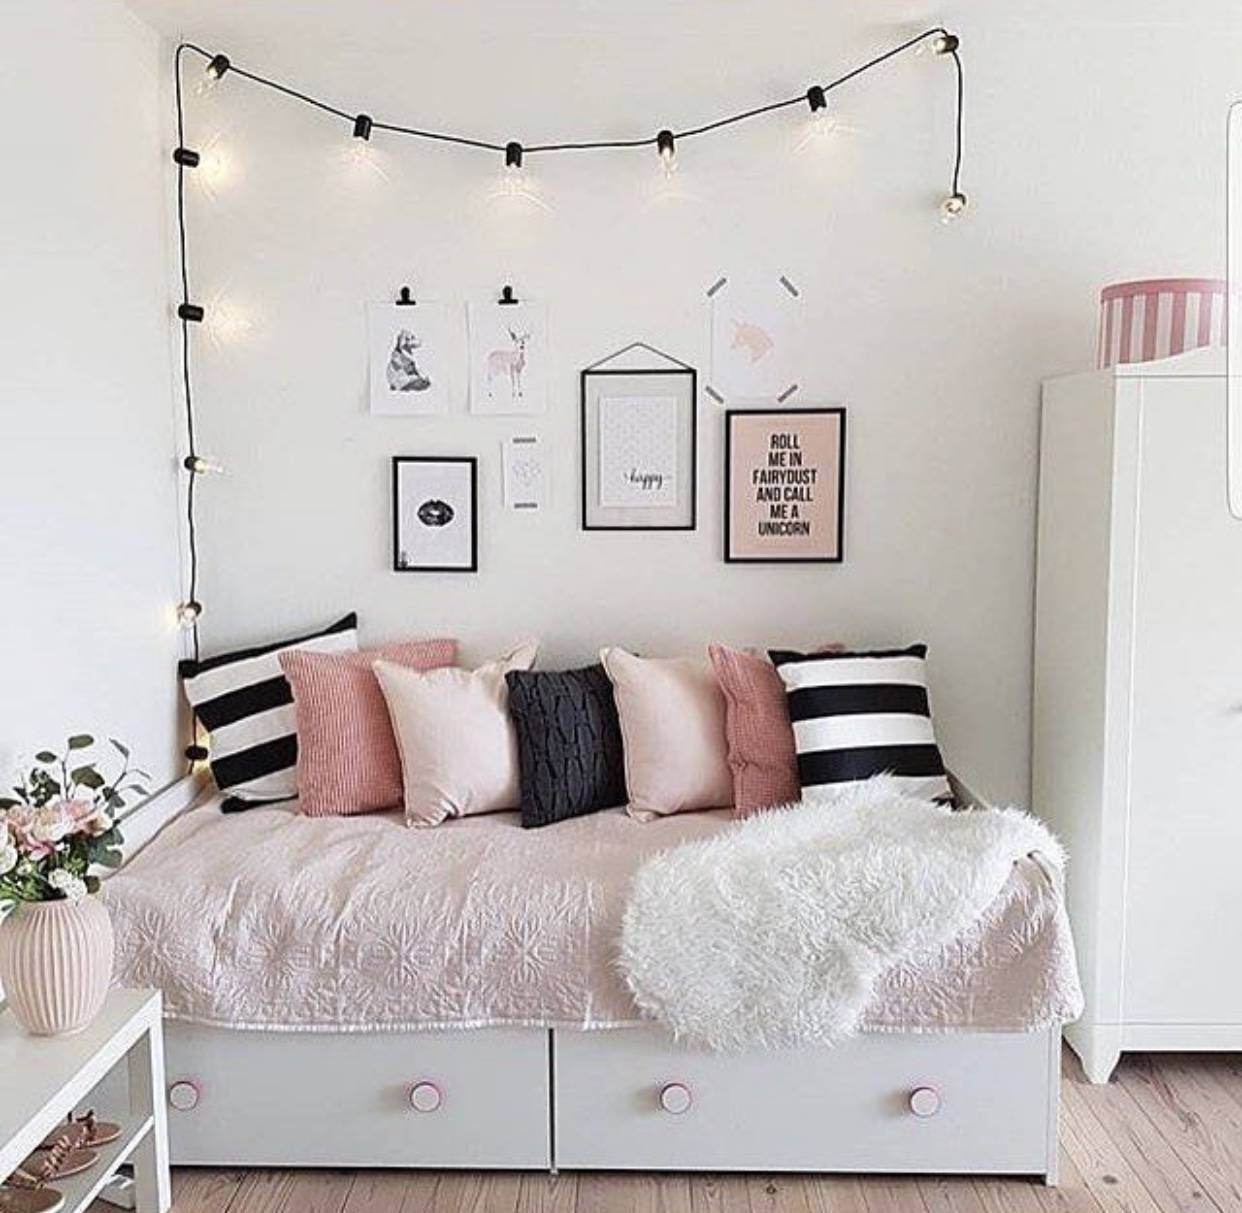 VSCO Room Ideas: How to Create a Cute Vsco Room #cutedormrooms